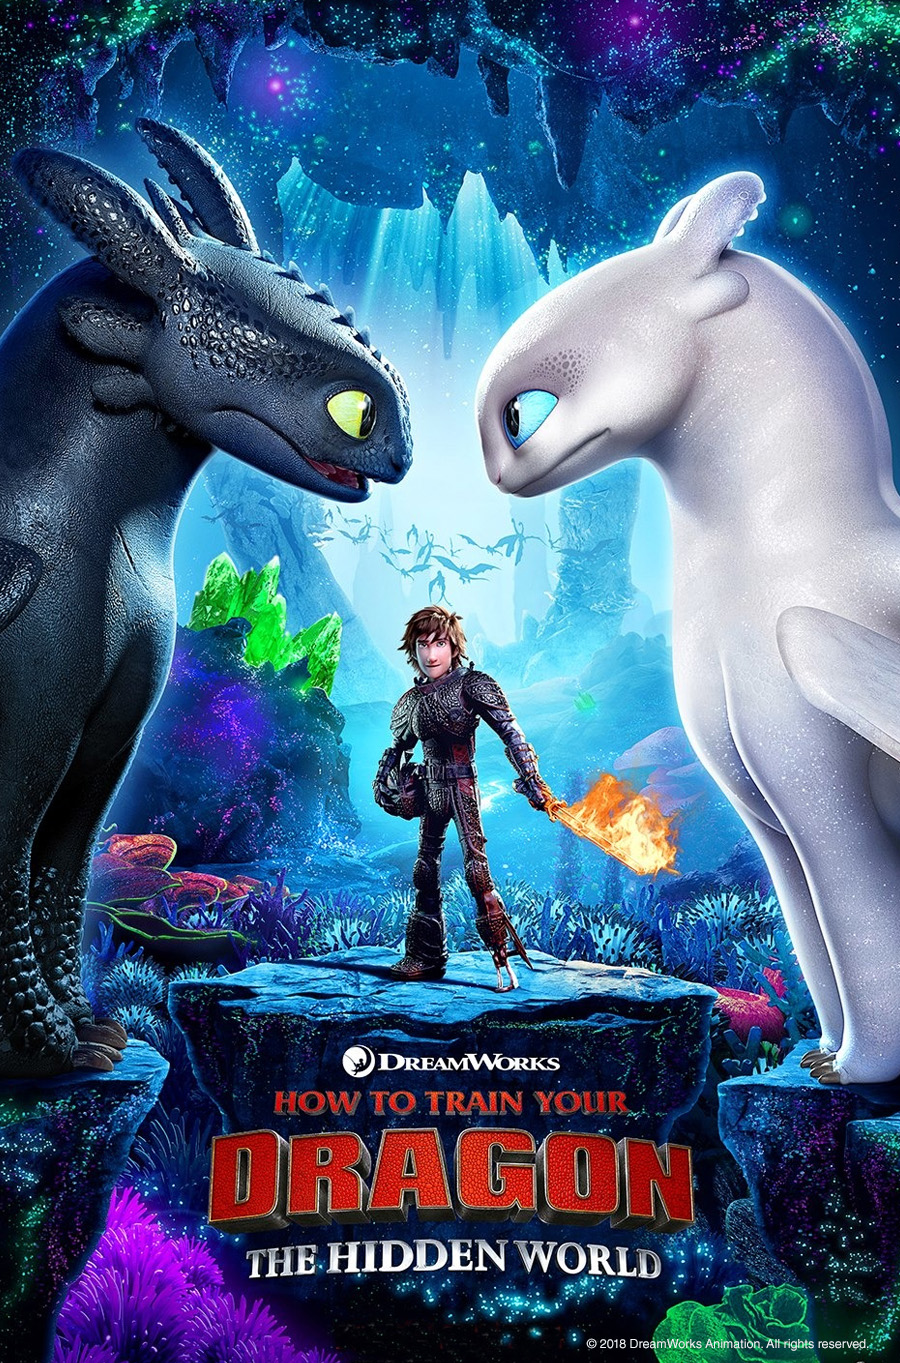 July 5: How to Train Your Dragon 3